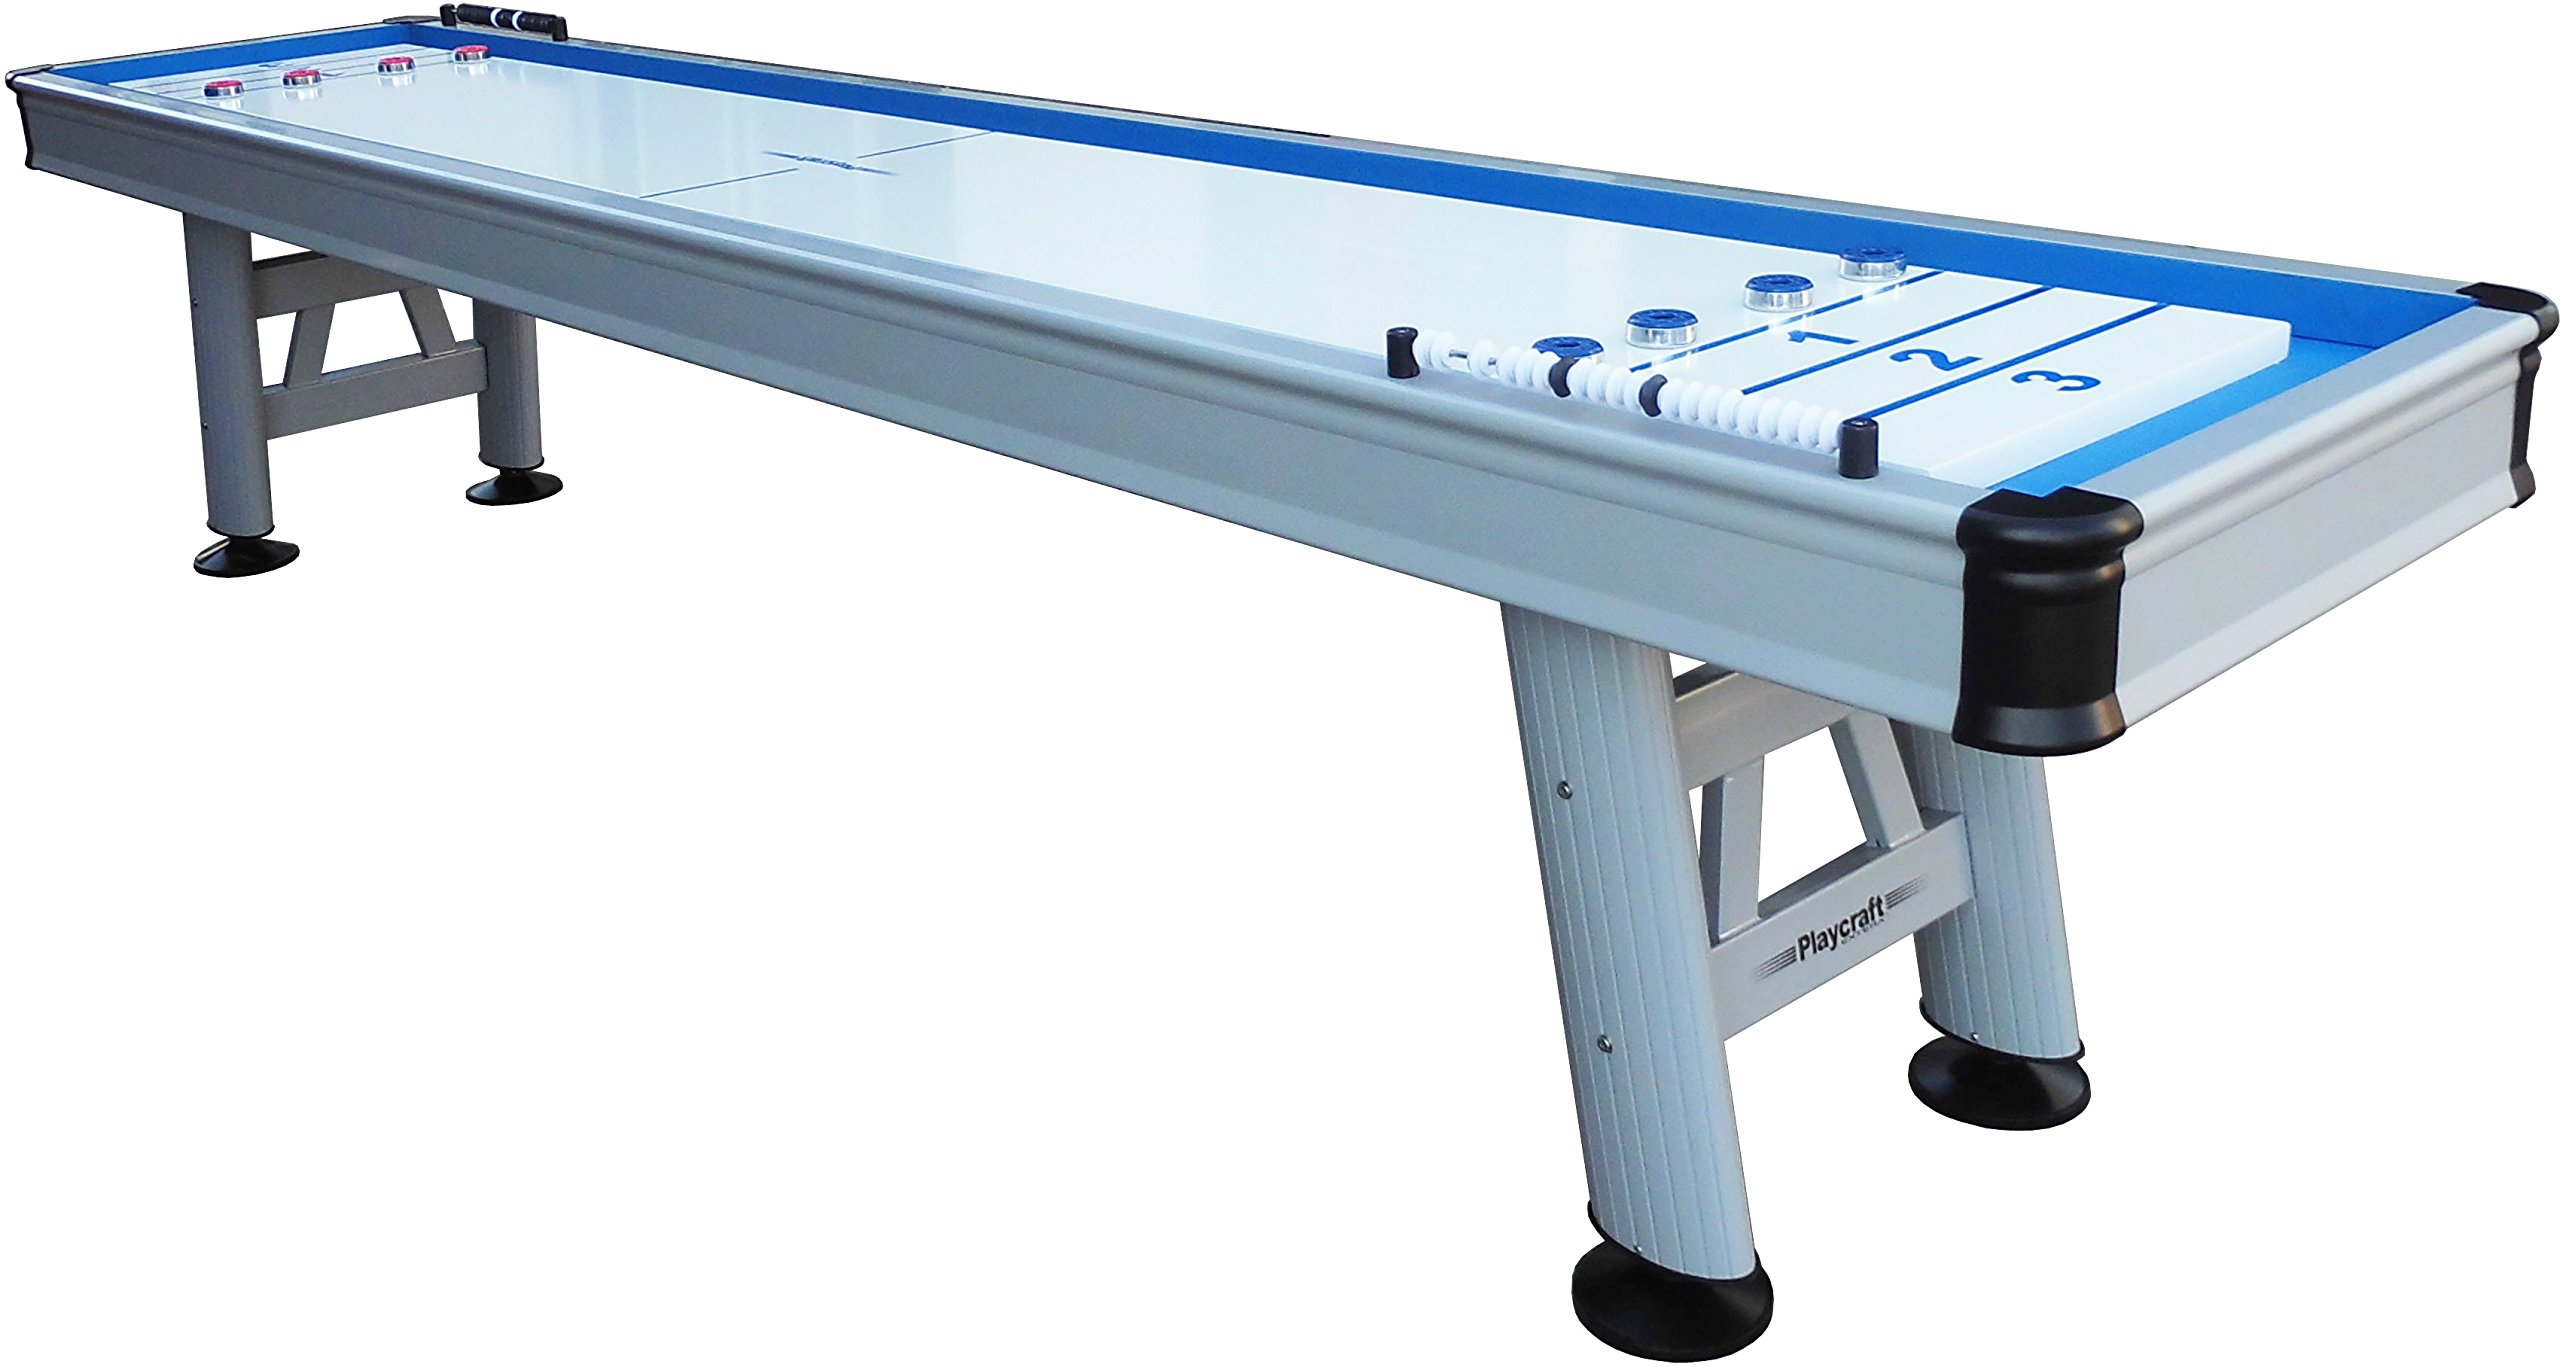 Playcraft Extera 12' Outdoor Shuffleboard Table with 20'' Playfield